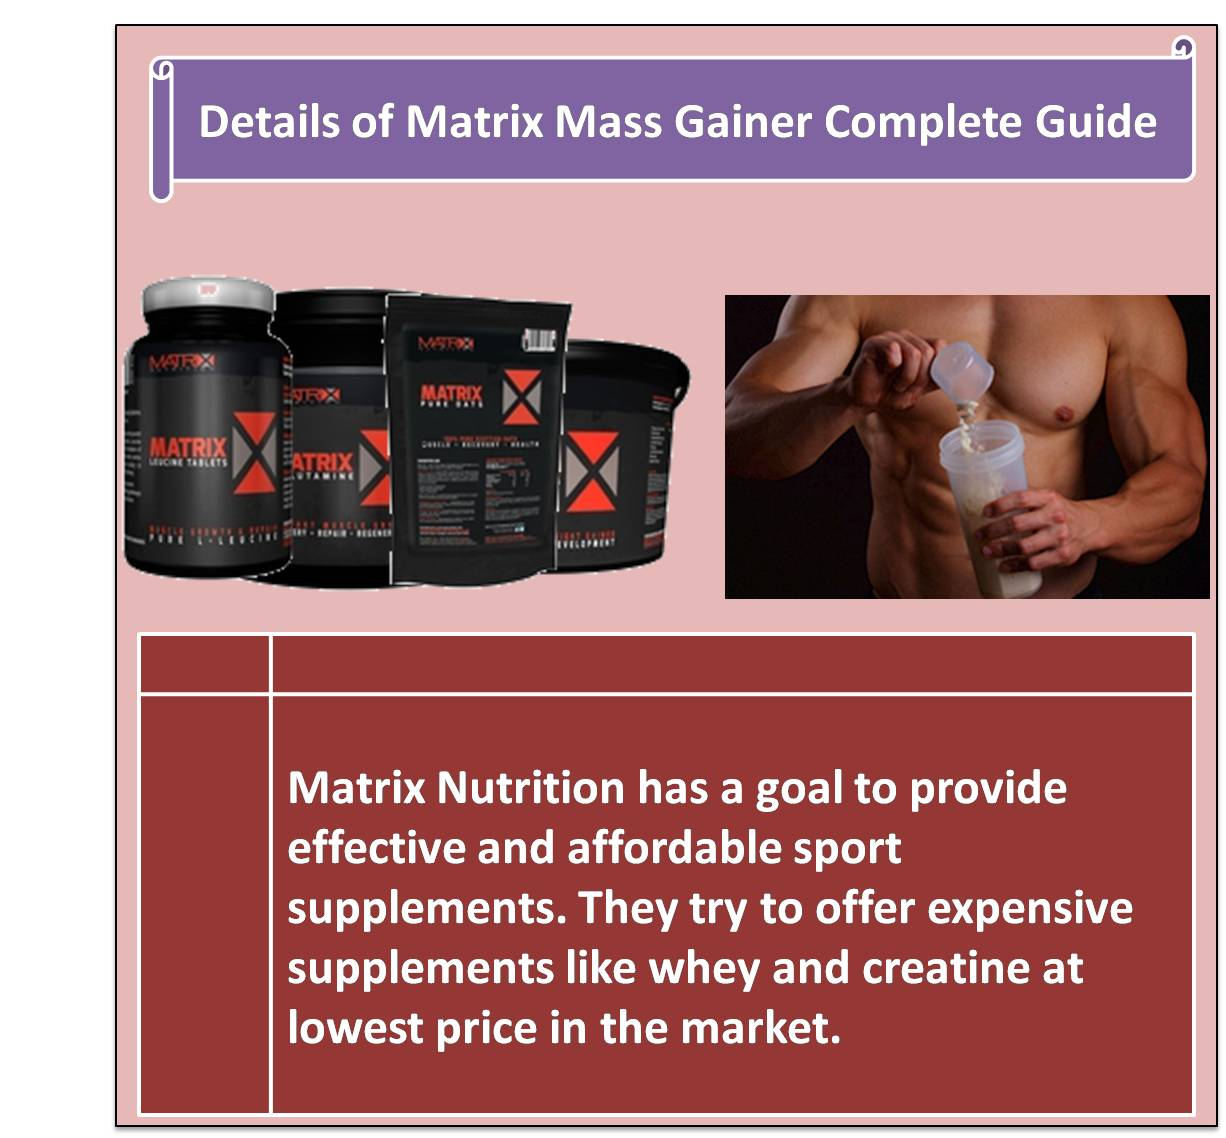 Details of Matrix Mass Gainer Complete Guide